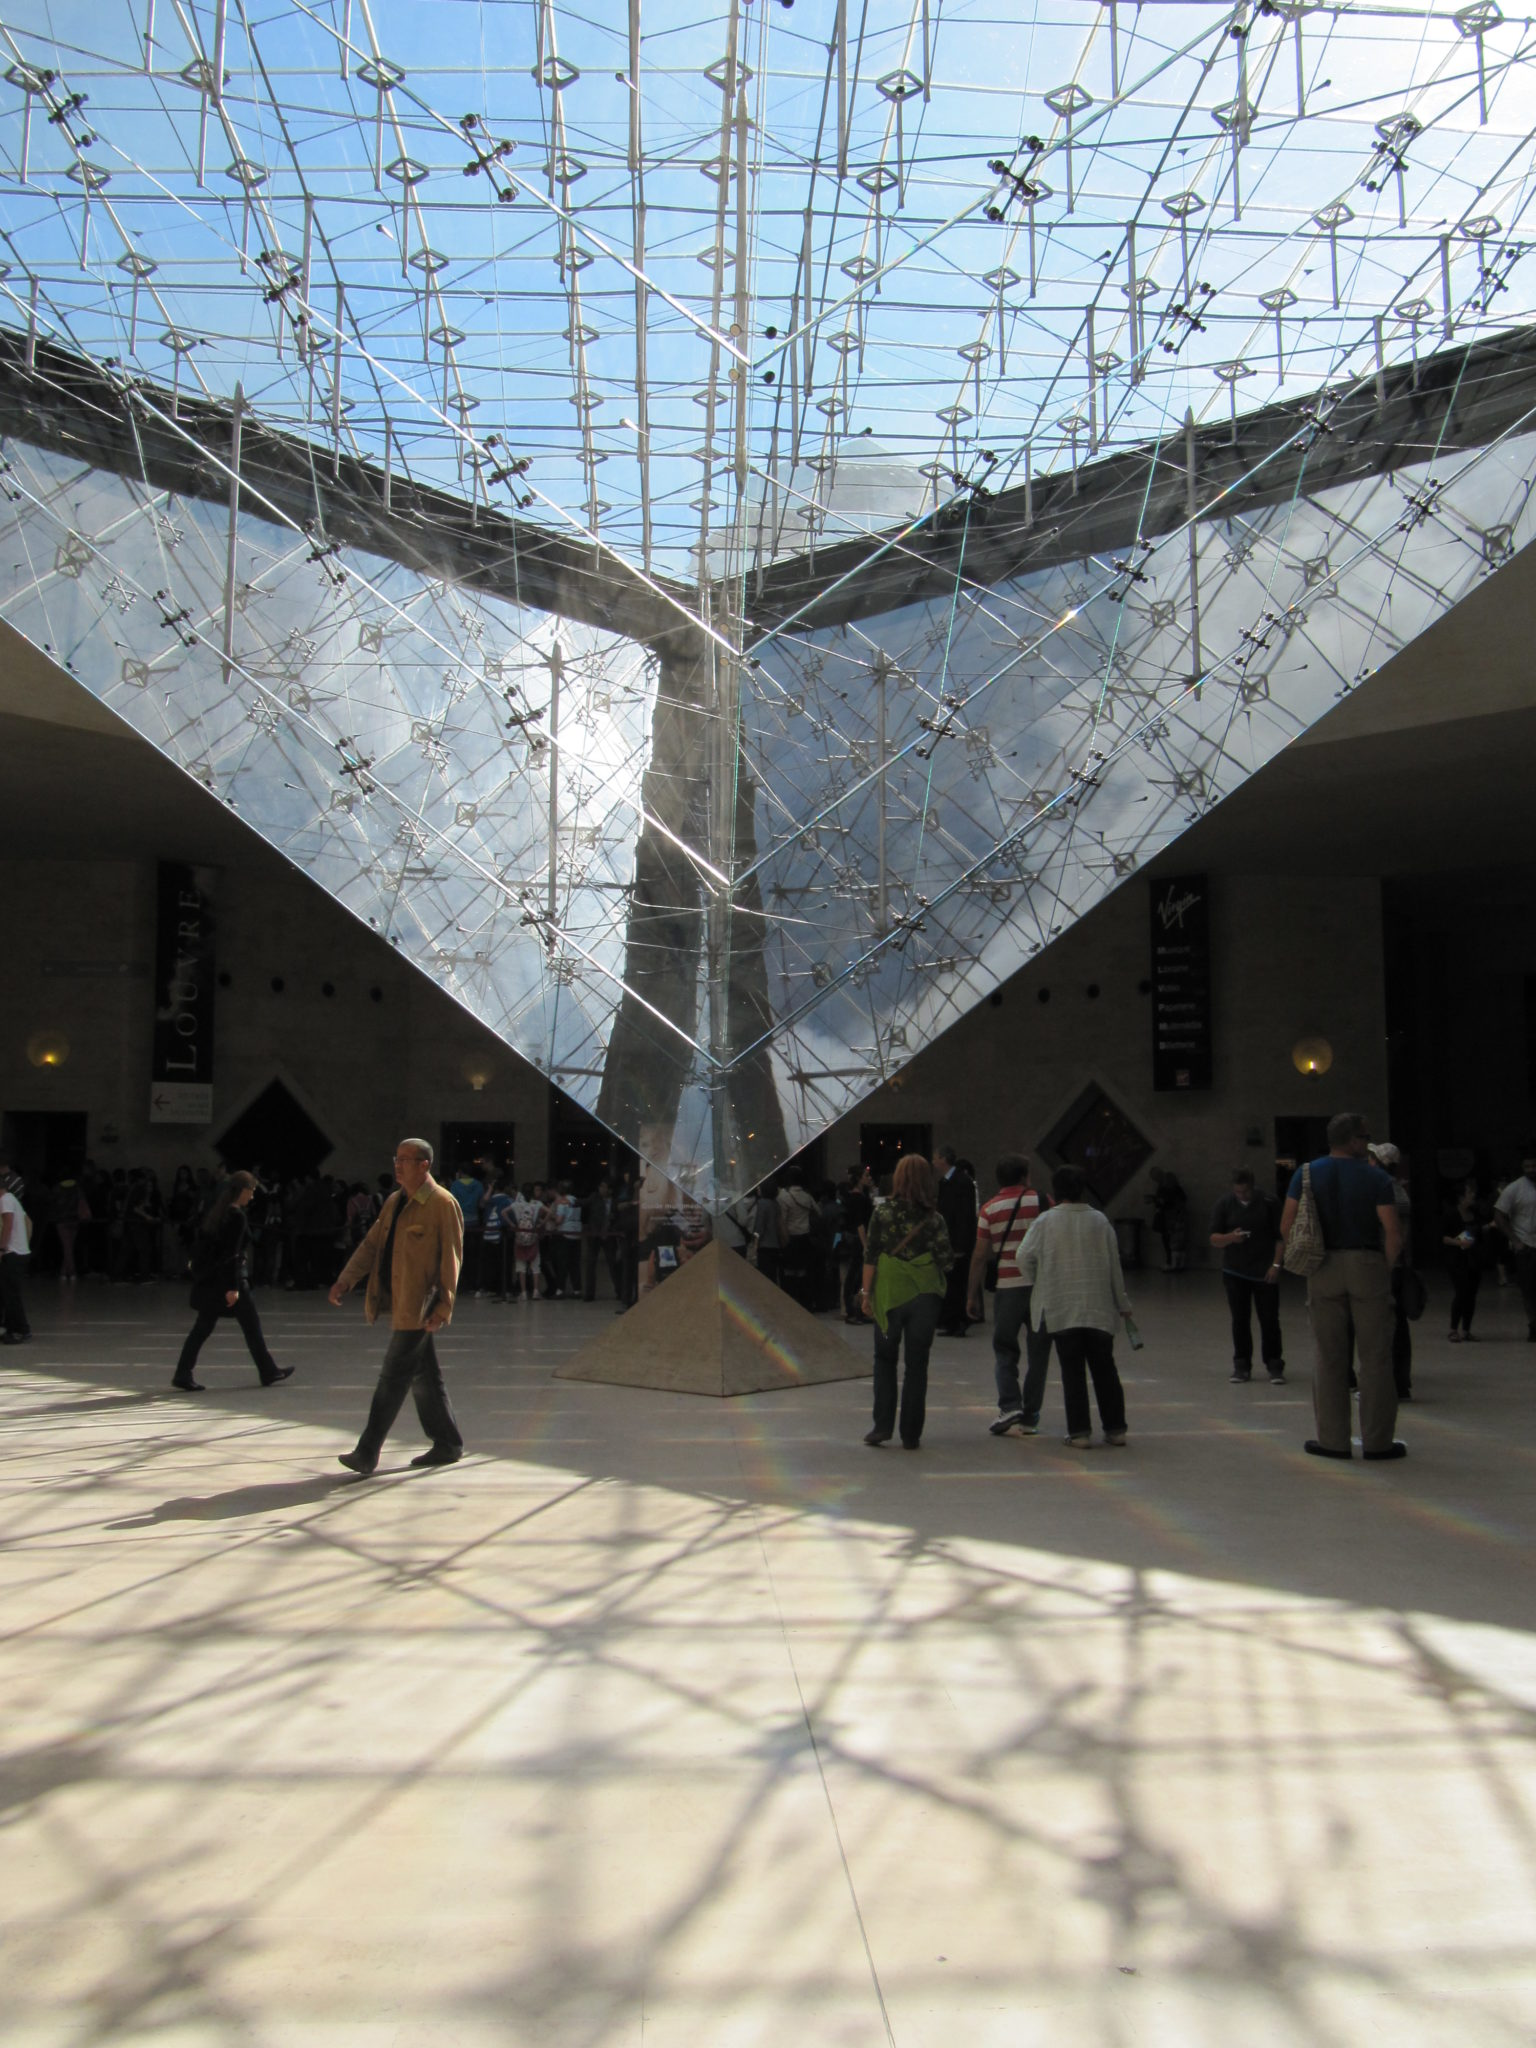 Inverted glass pyramid inside Louvre